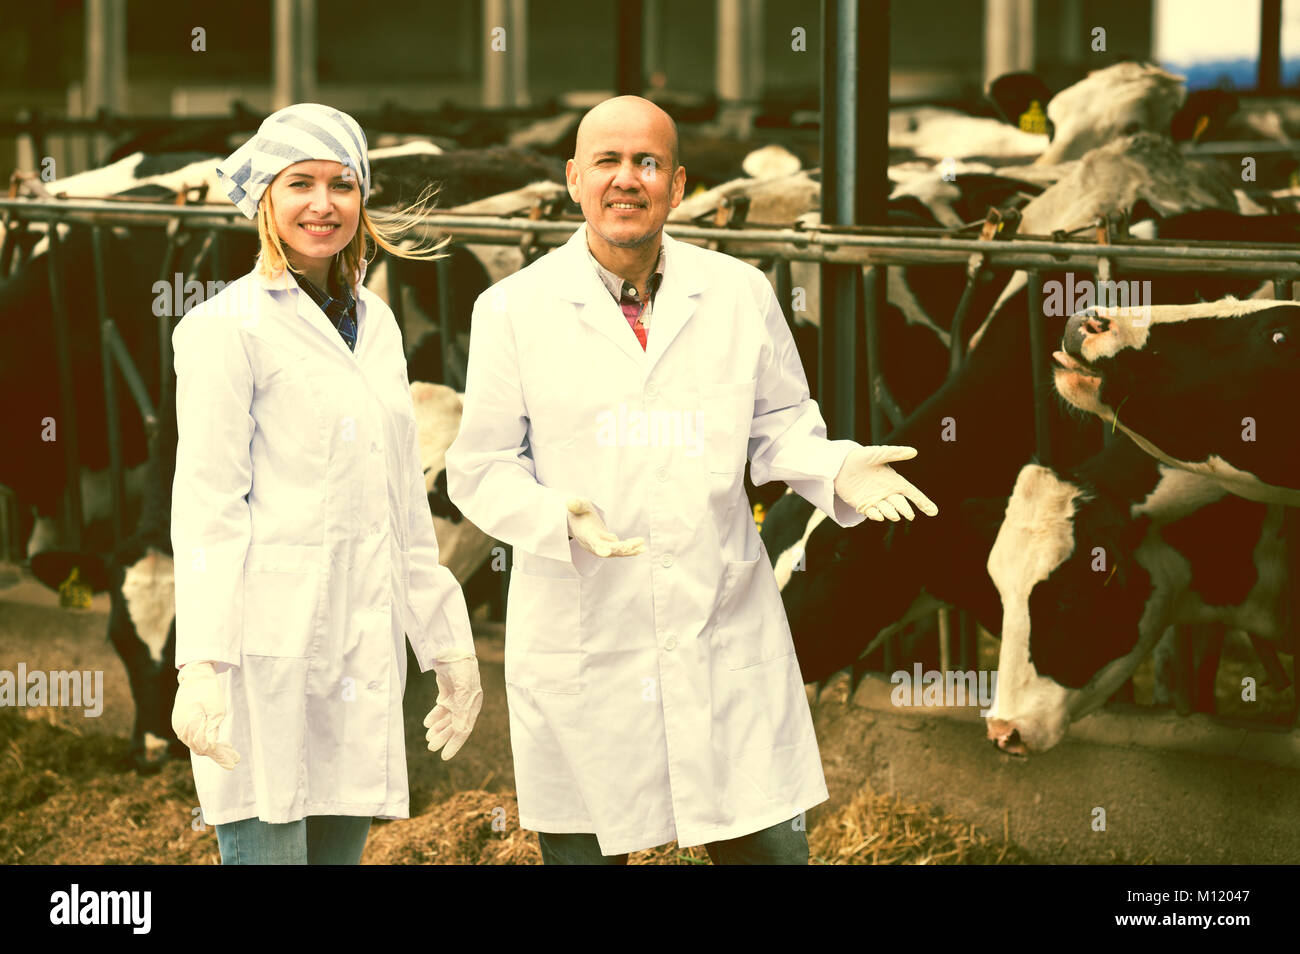 Professional vets working with cows in cowhouse outdoors Stock Photo